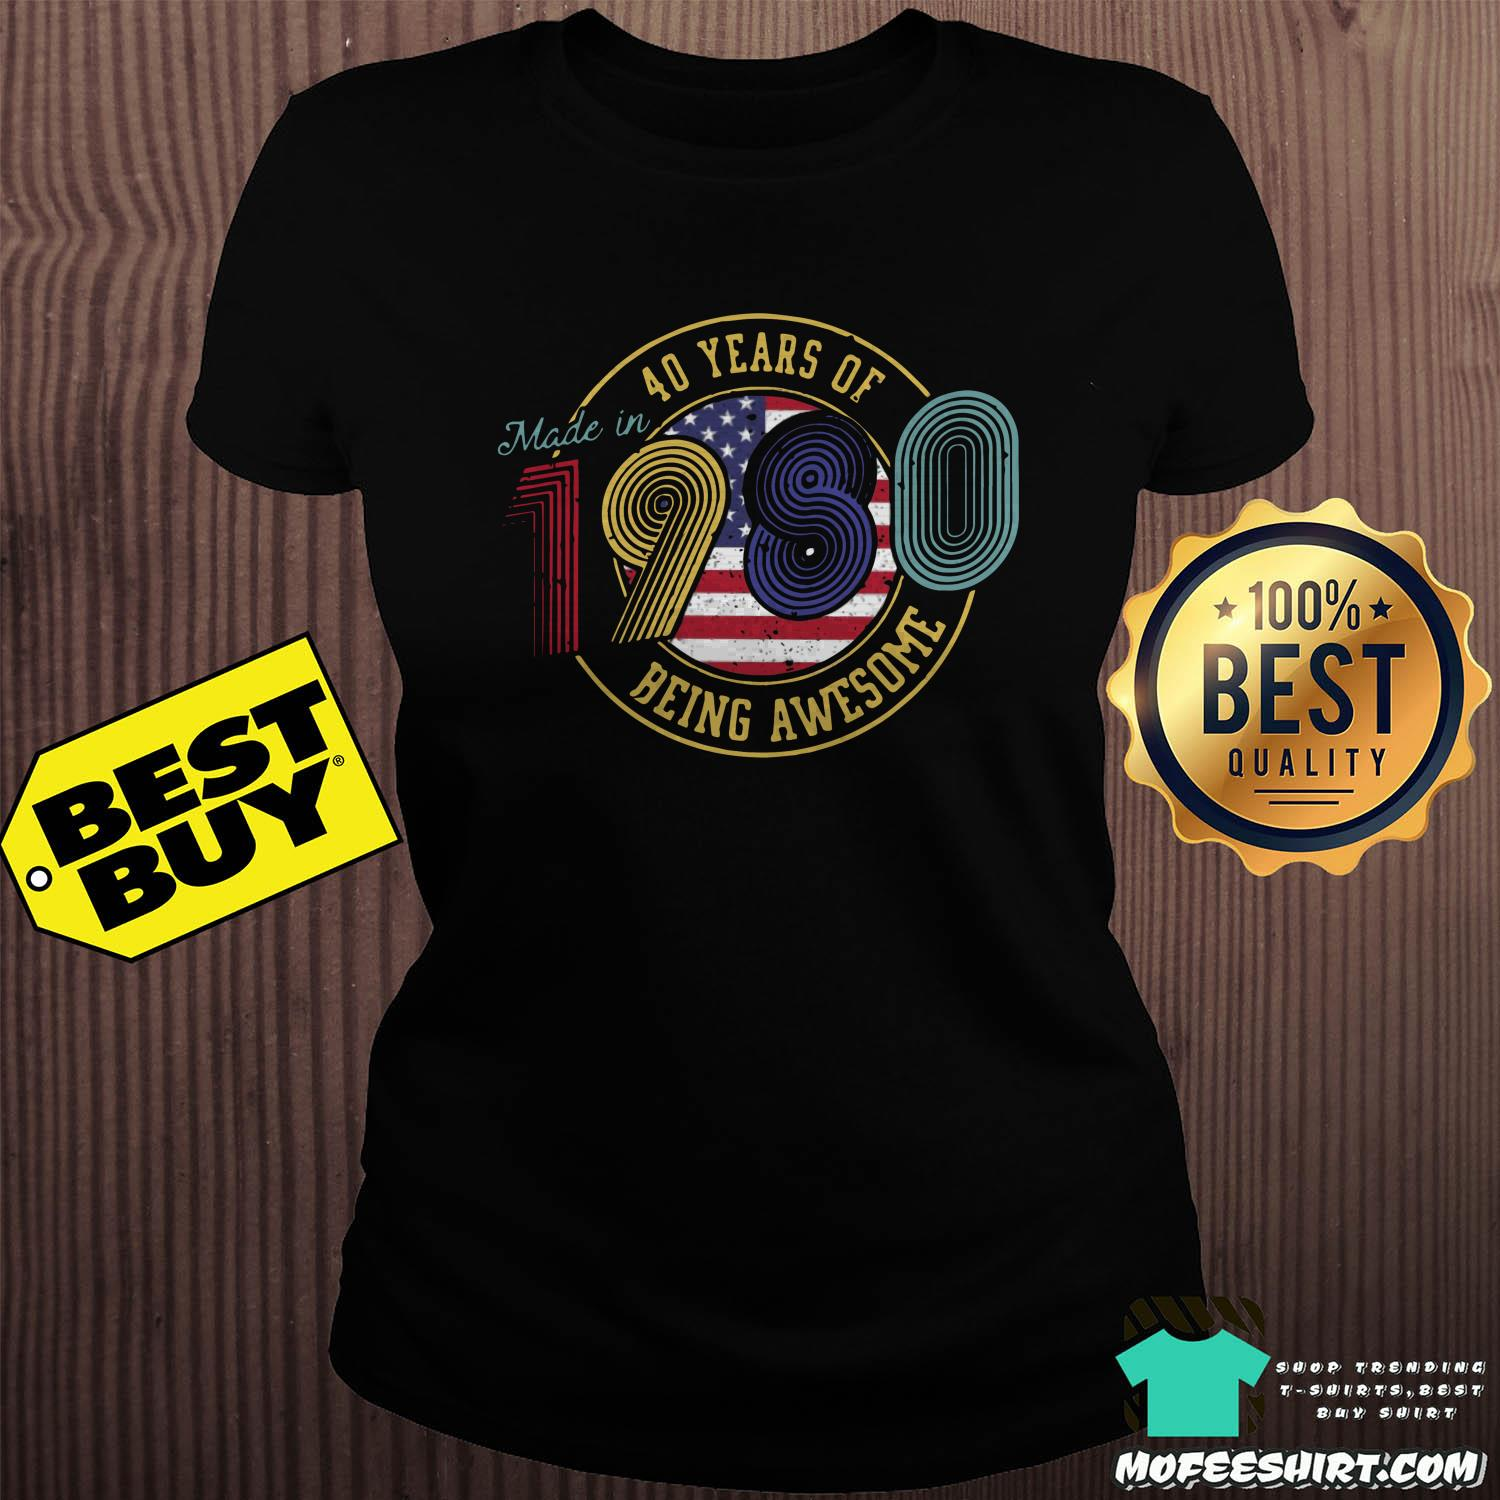 made in 40 years of 1980 being awesome american vintage ladies tee - Made in 40 Years Of 1980 Being Awesome American Vintage Shirt